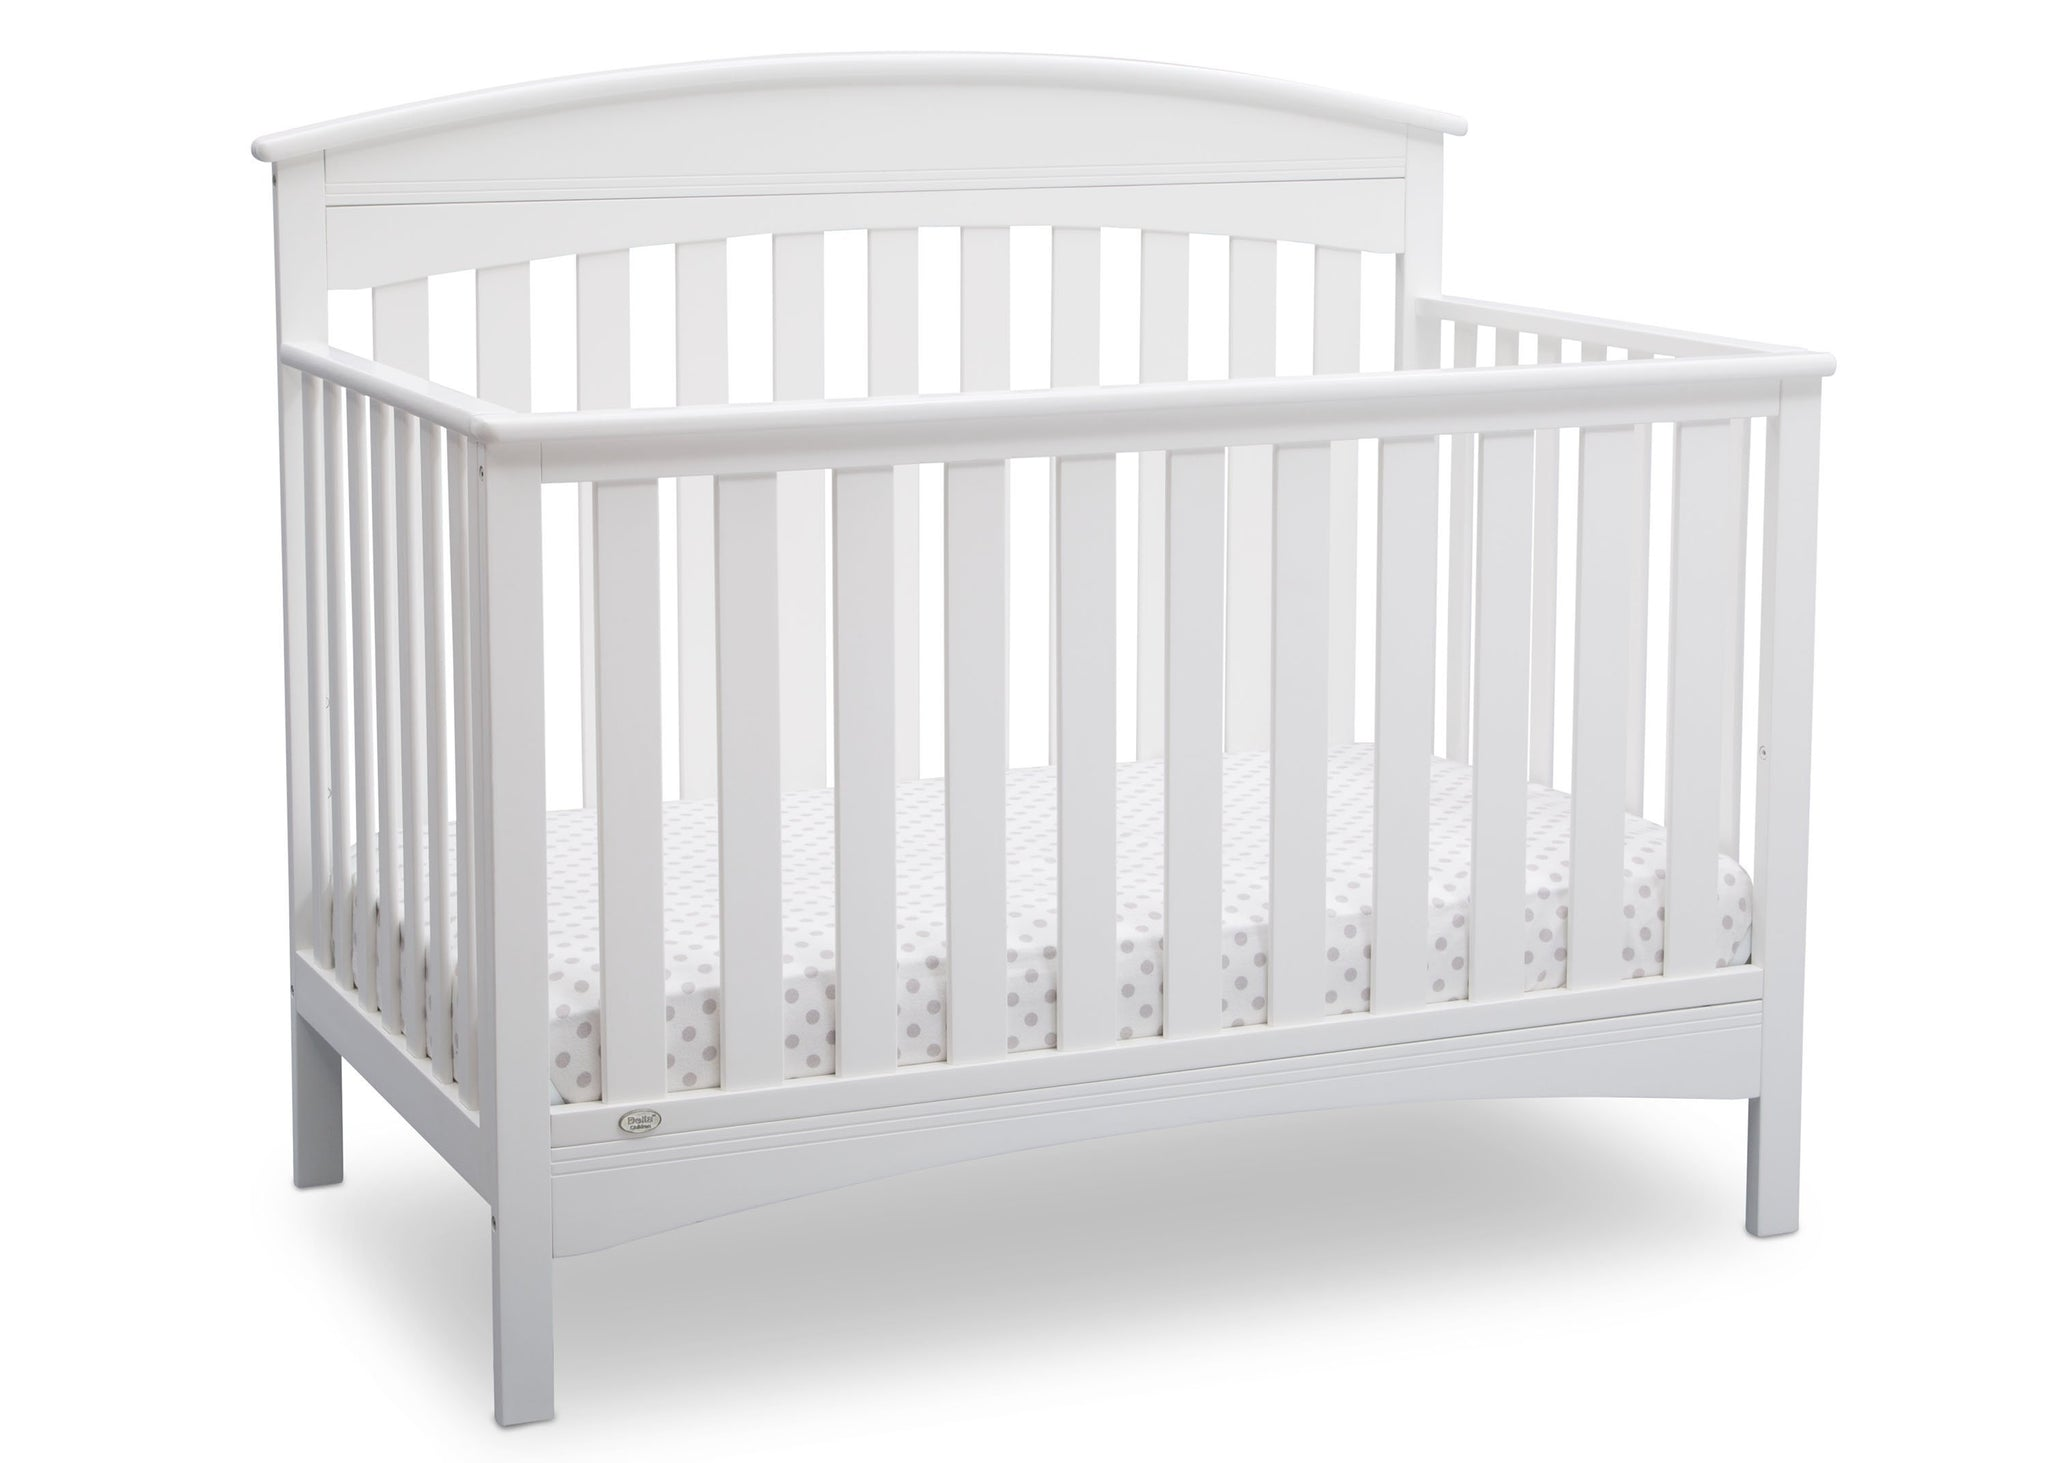 Delta Children Bianca (130) Bennington Elite Arched 4-in-1 Convertible Crib, Crib Angle, b3b